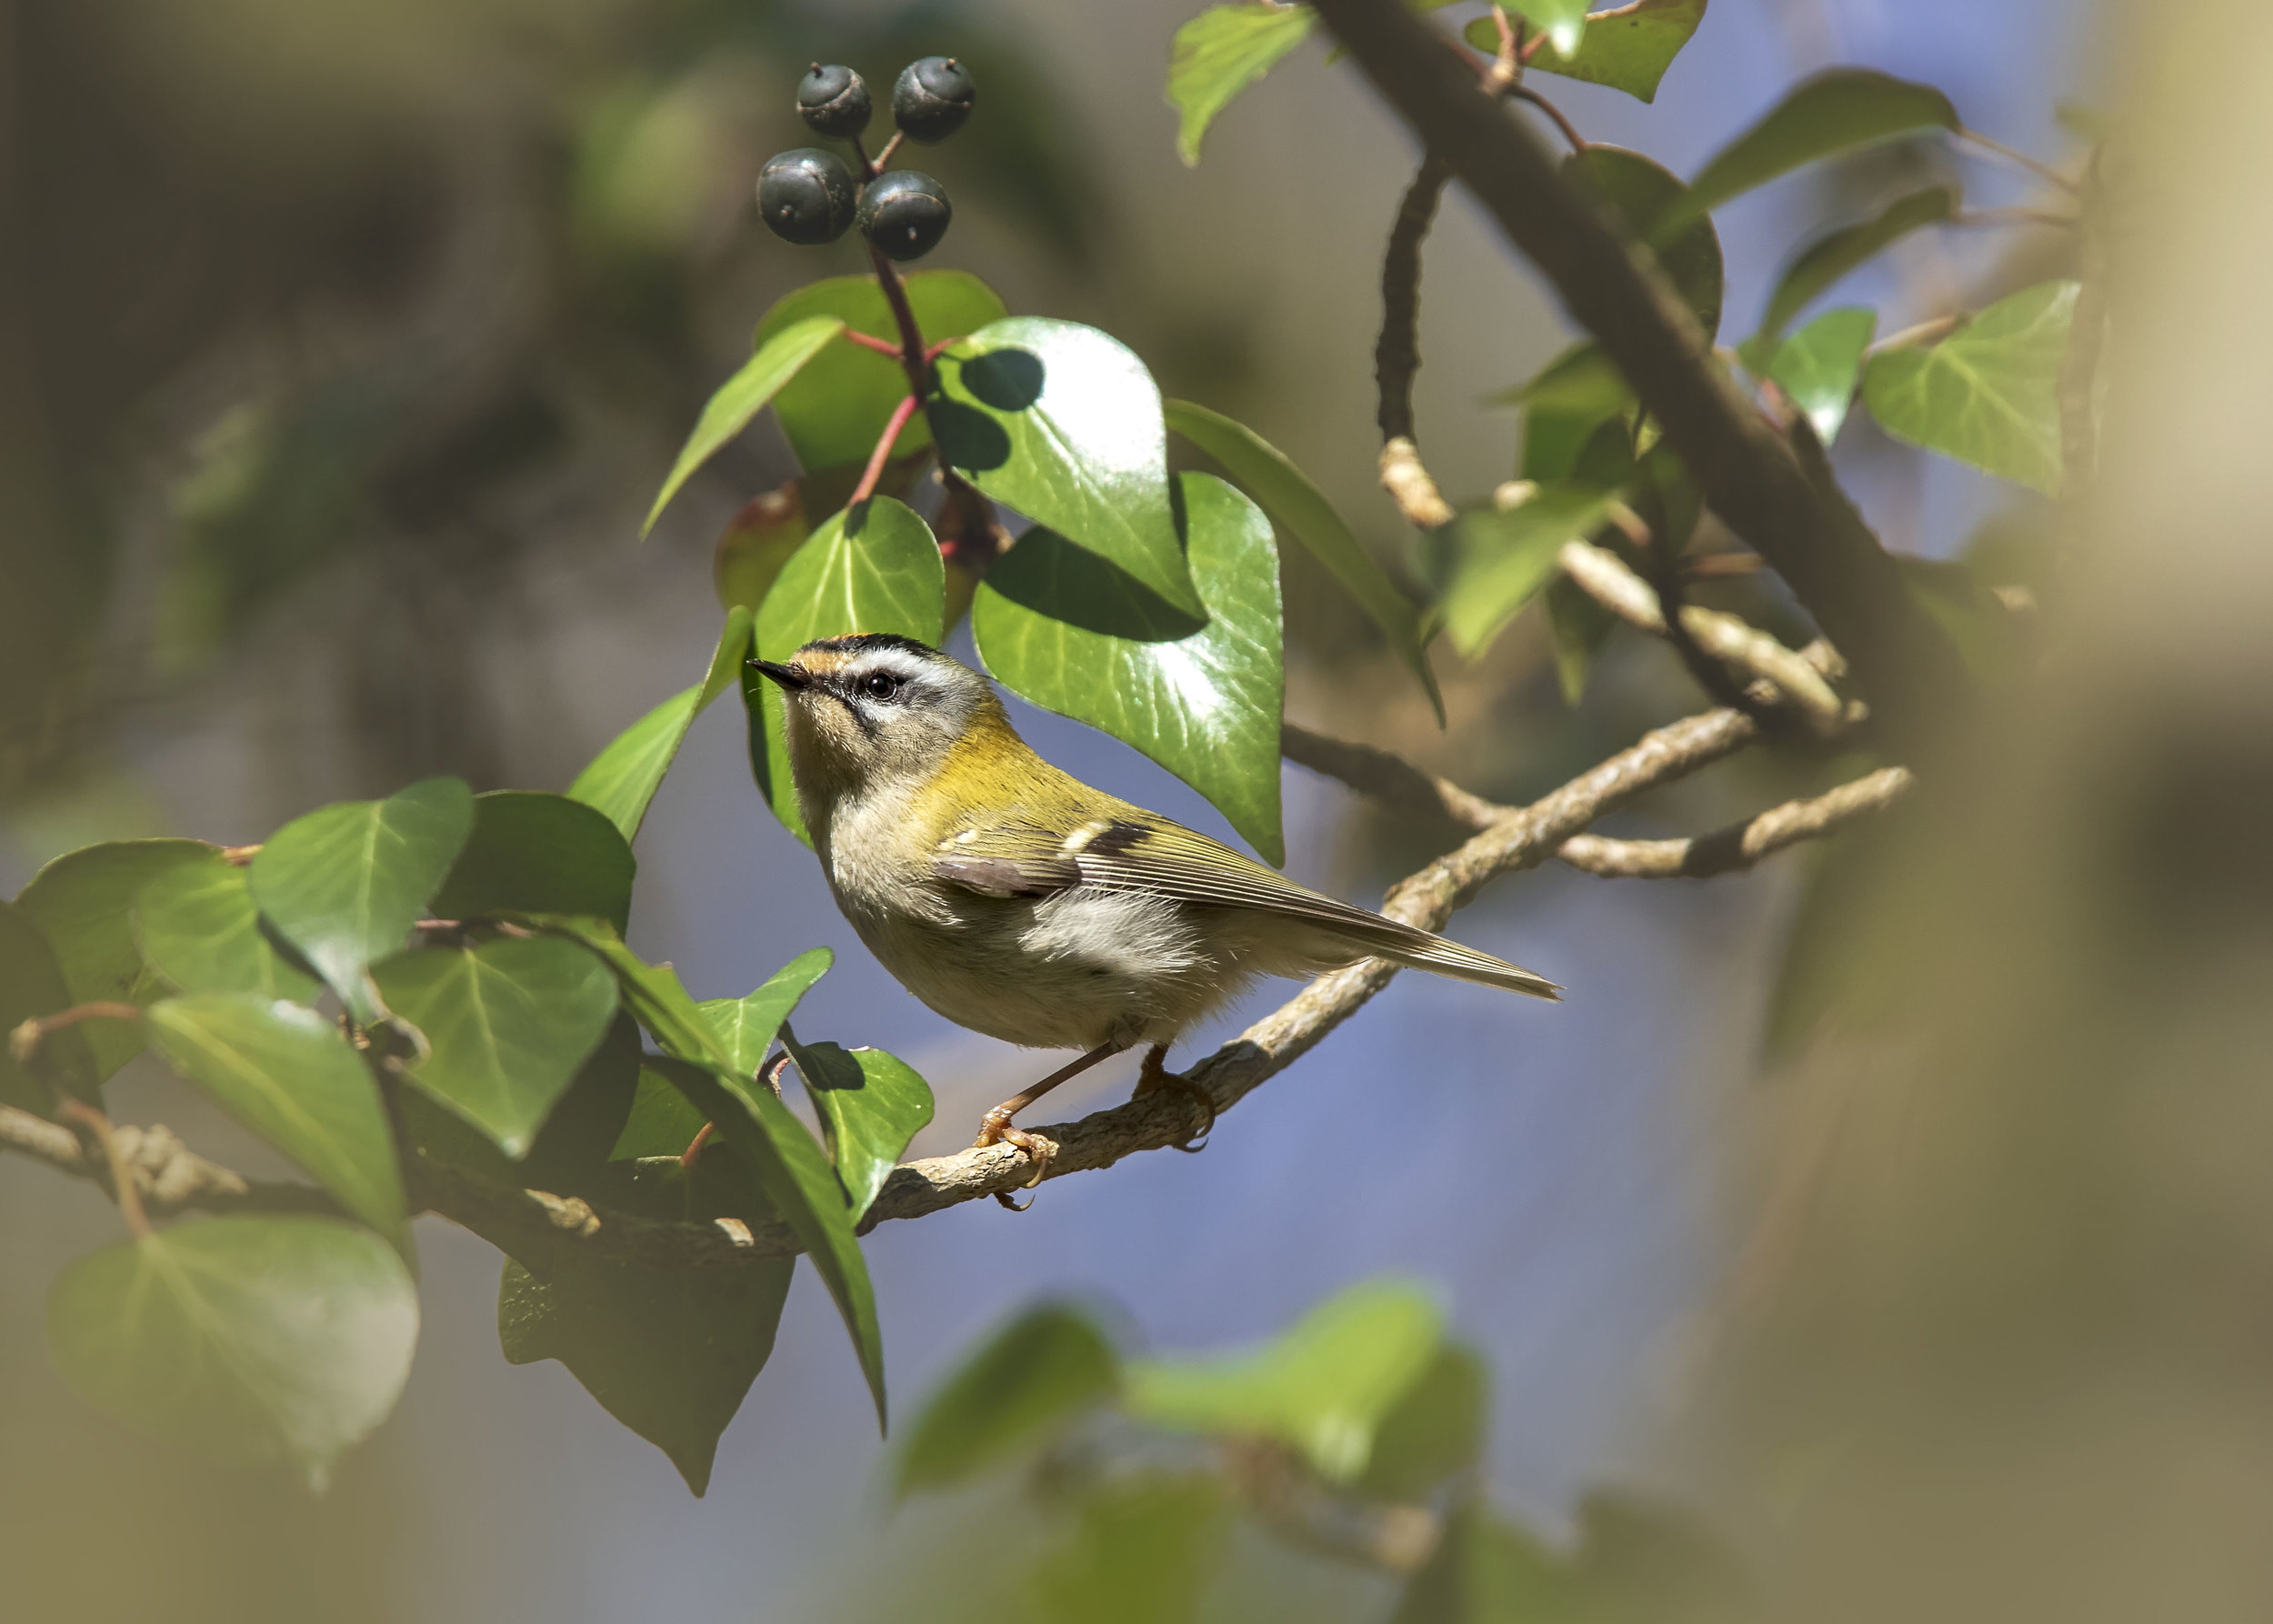 Mimicking Firecrest | March 2019